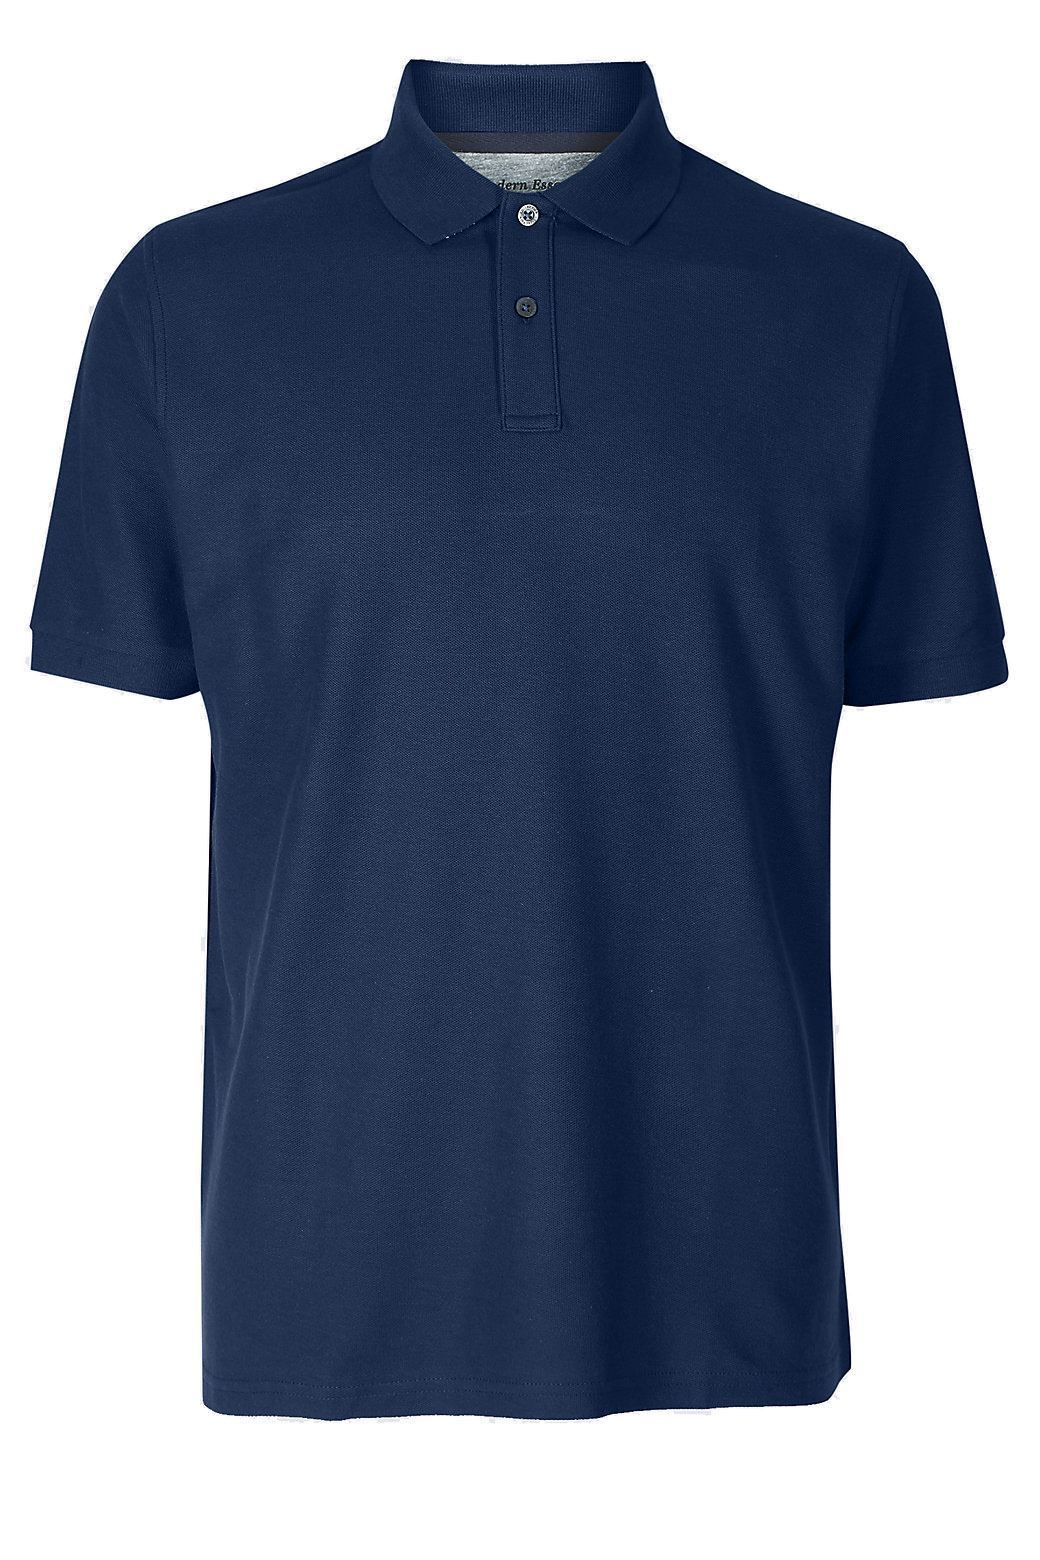 MARKS-amp-SPENCER-Mens-Classic-Cotton-Polo-Shirt-M-amp-S-All-Colours-and-Large-Sizes thumbnail 19